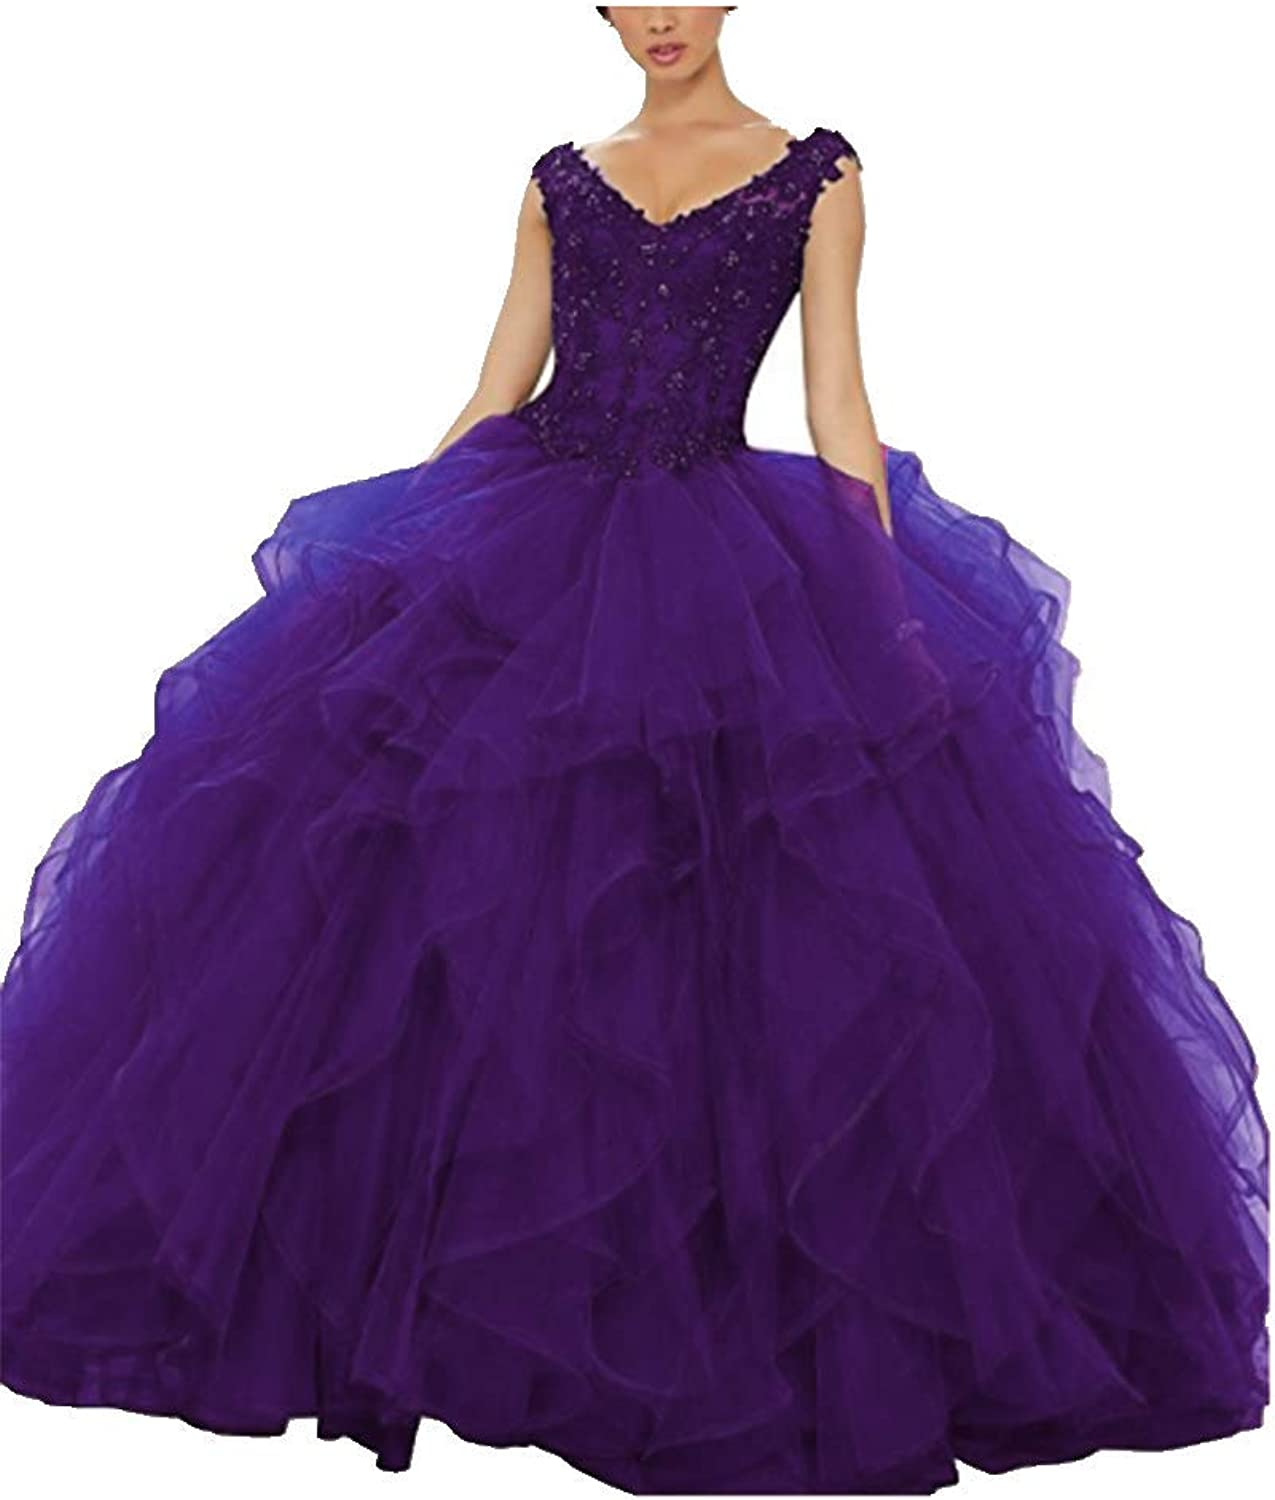 FWVR Women's 2019 Ball Gown Quinceanera Dresses Long Prom Party Dress Appliques